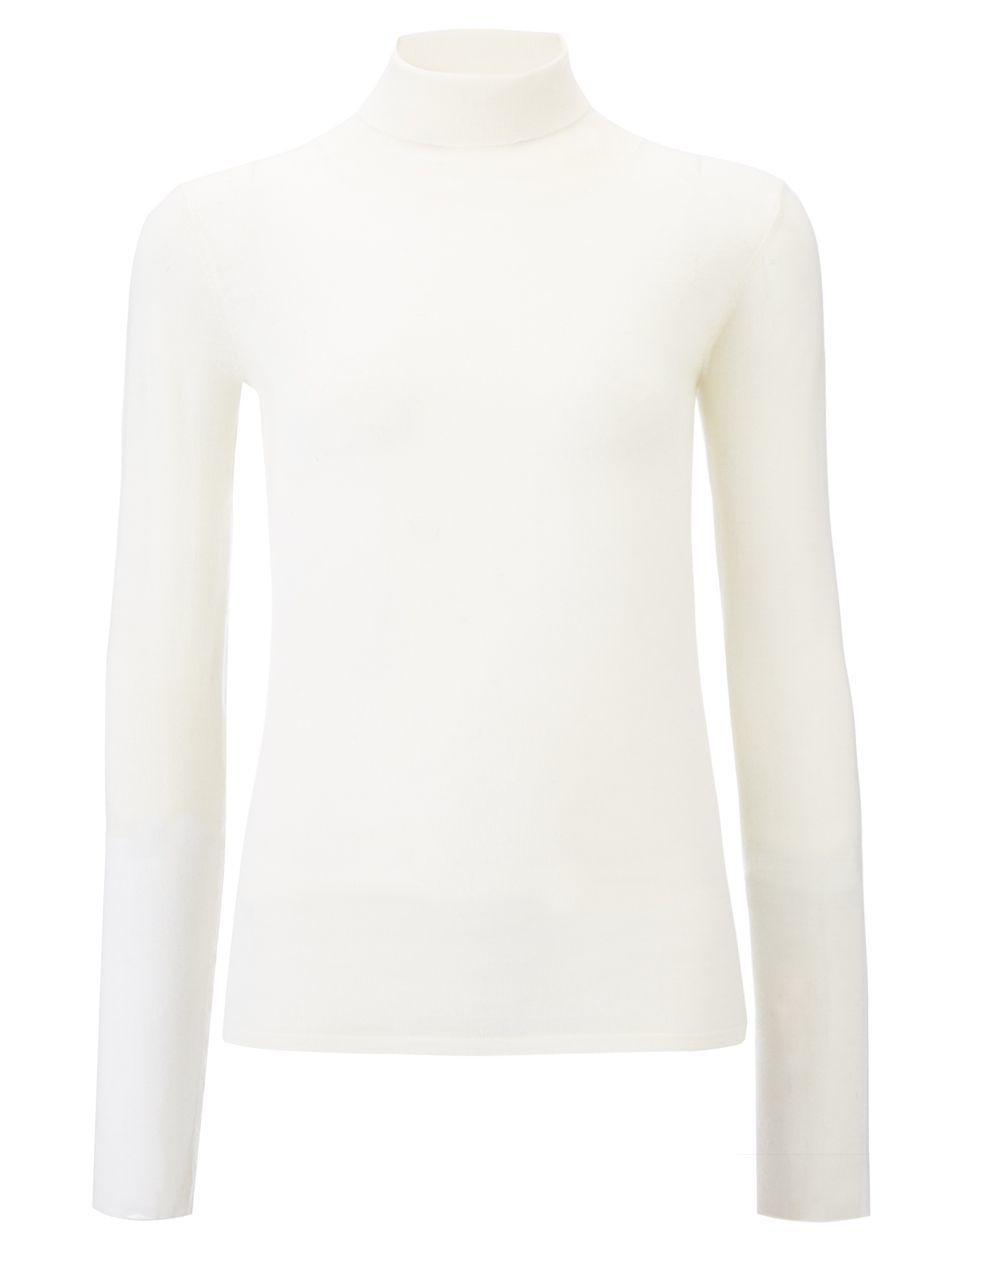 Transparent Roll Neck Knit In Ecru - pattern: plain; neckline: roll neck; predominant colour: ivory/cream; occasions: casual; length: standard; style: top; fibres: wool - 100%; fit: body skimming; sleeve length: long sleeve; sleeve style: standard; texture group: knits/crochet; pattern type: fabric; season: a/w 2015; wardrobe: basic